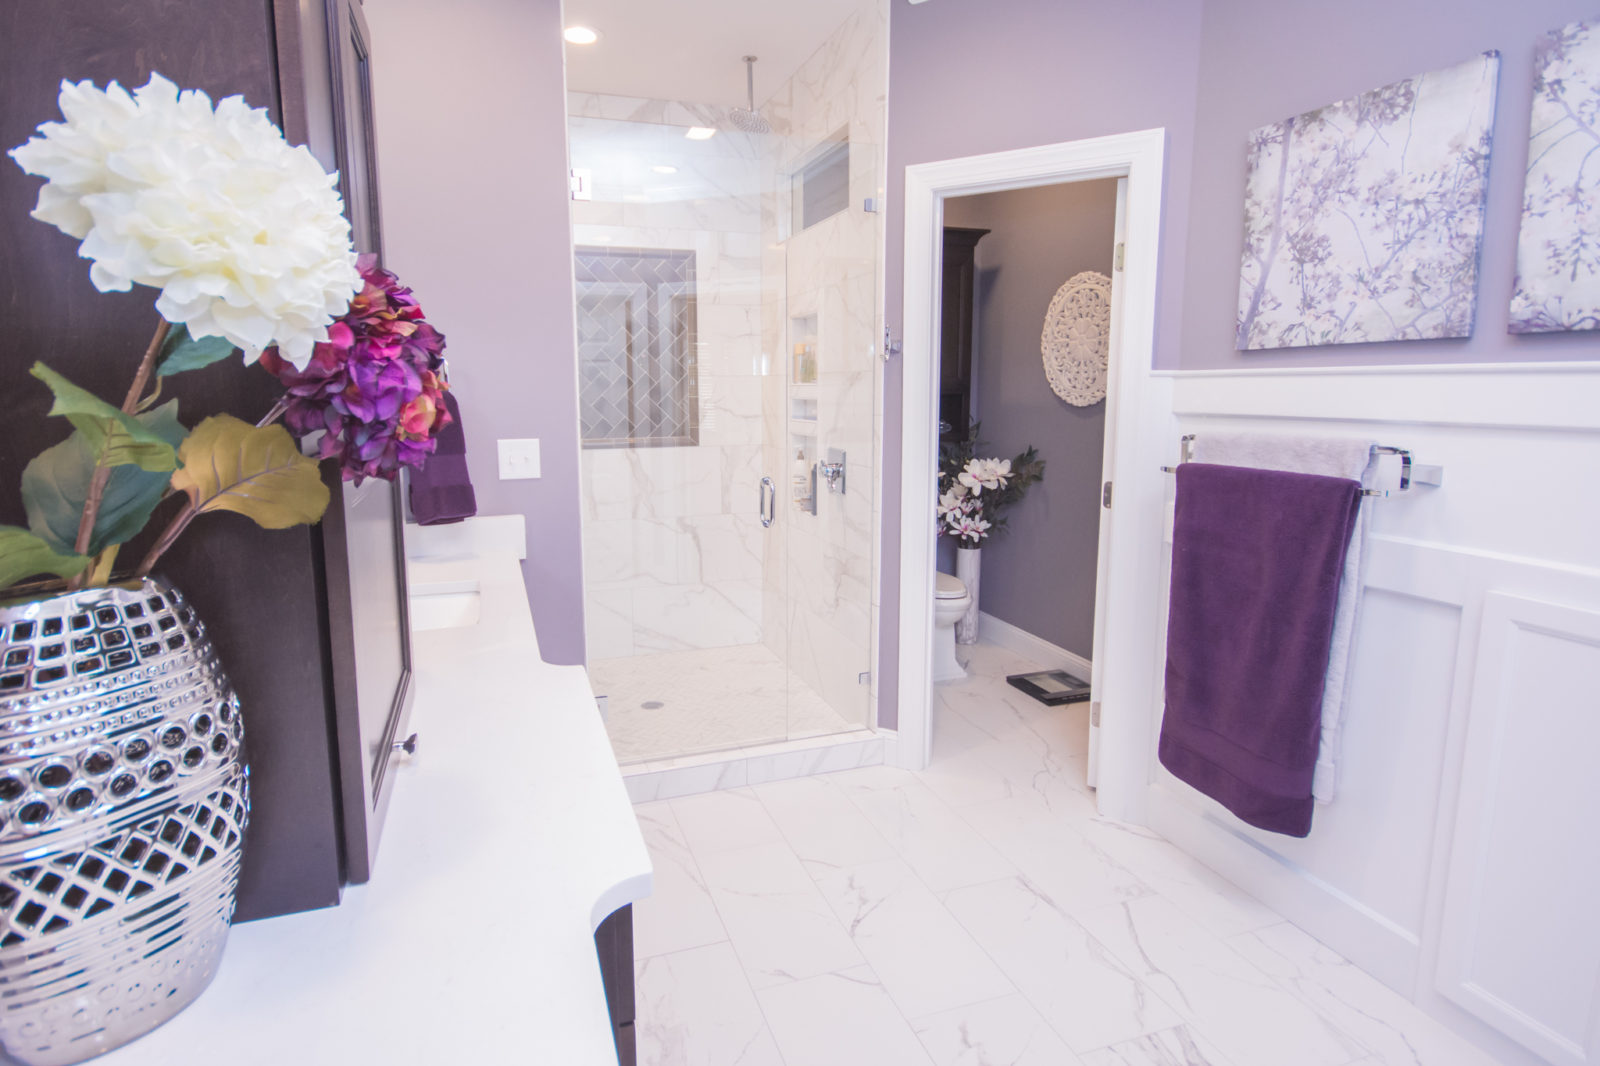 Waxhaw, NC home, bathroom with flowers and towels